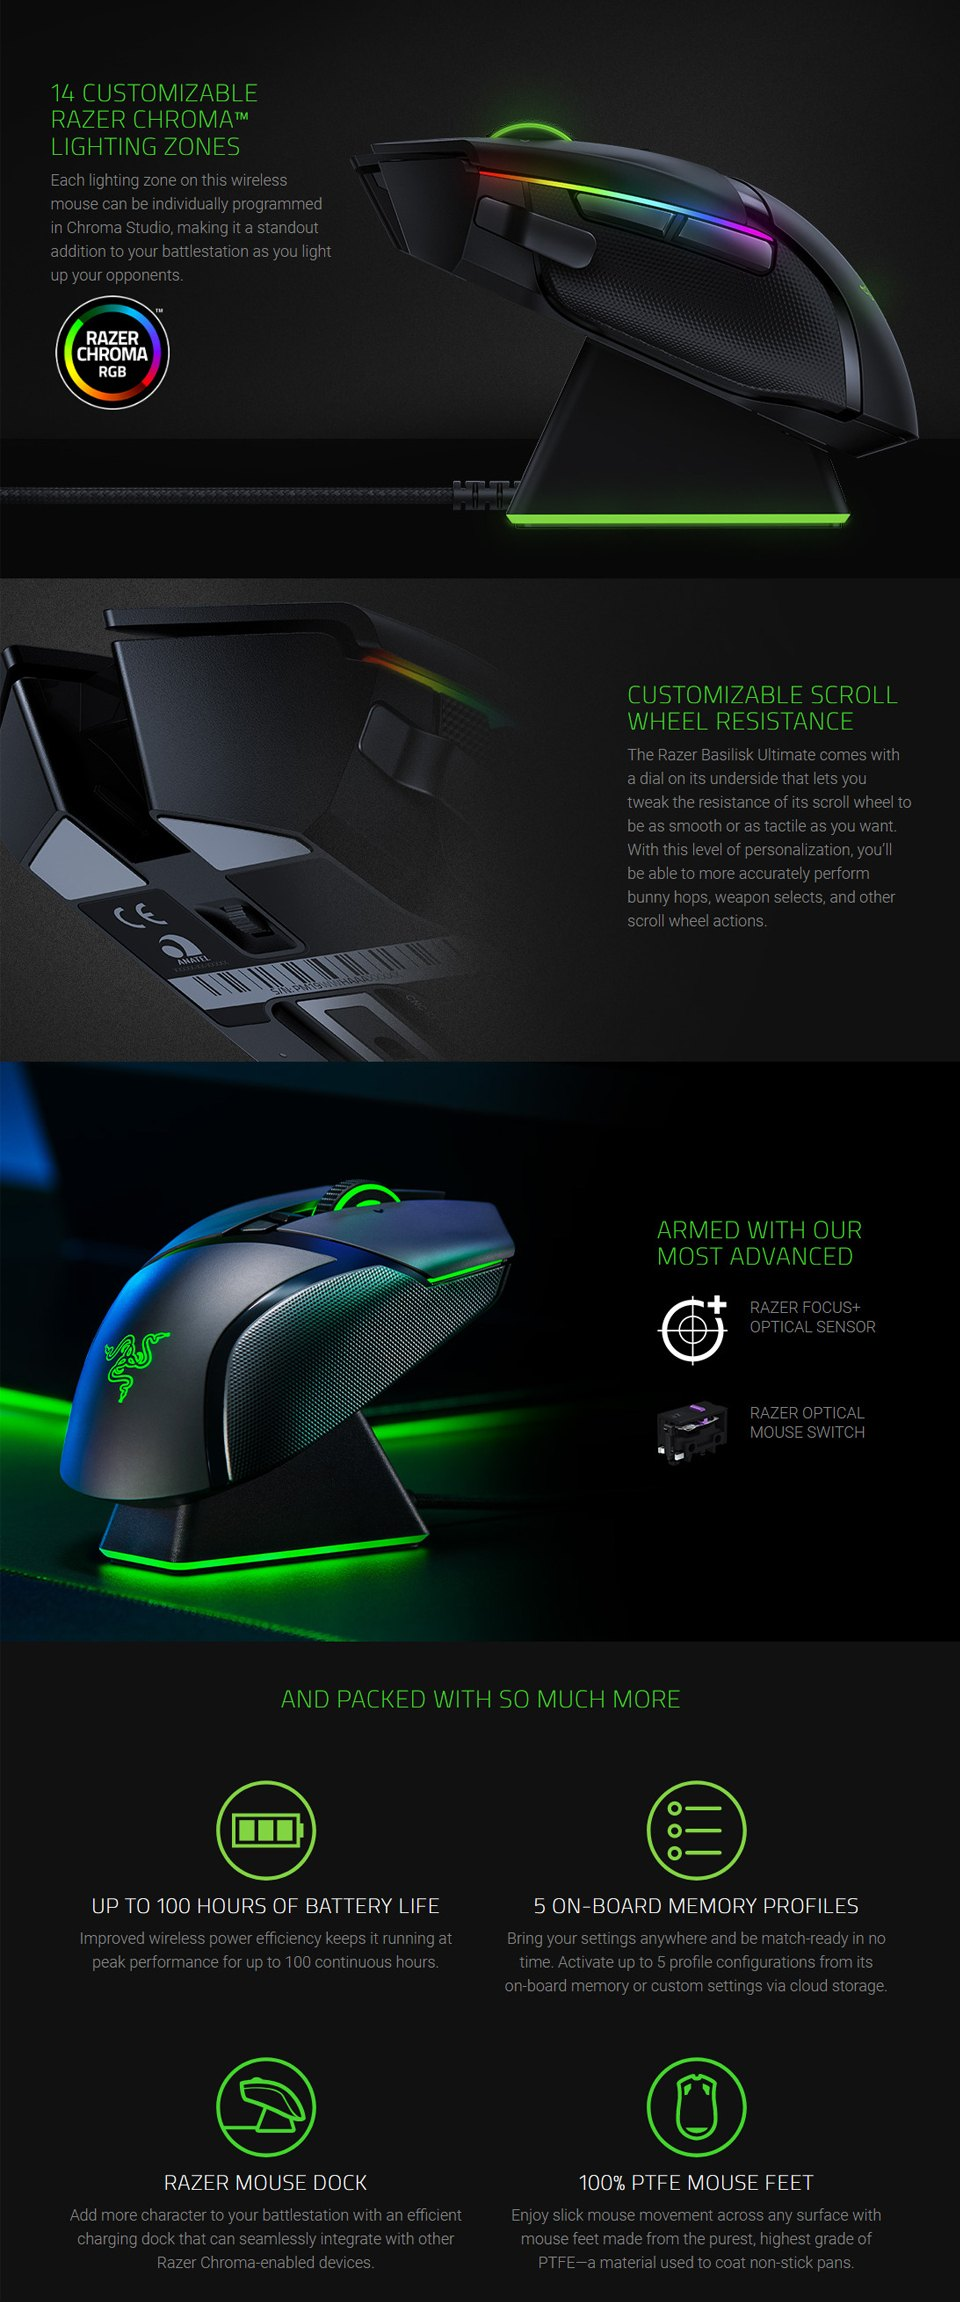 Razer Basilisk Ultimate Wireless Optical Gaming Mouse features 2